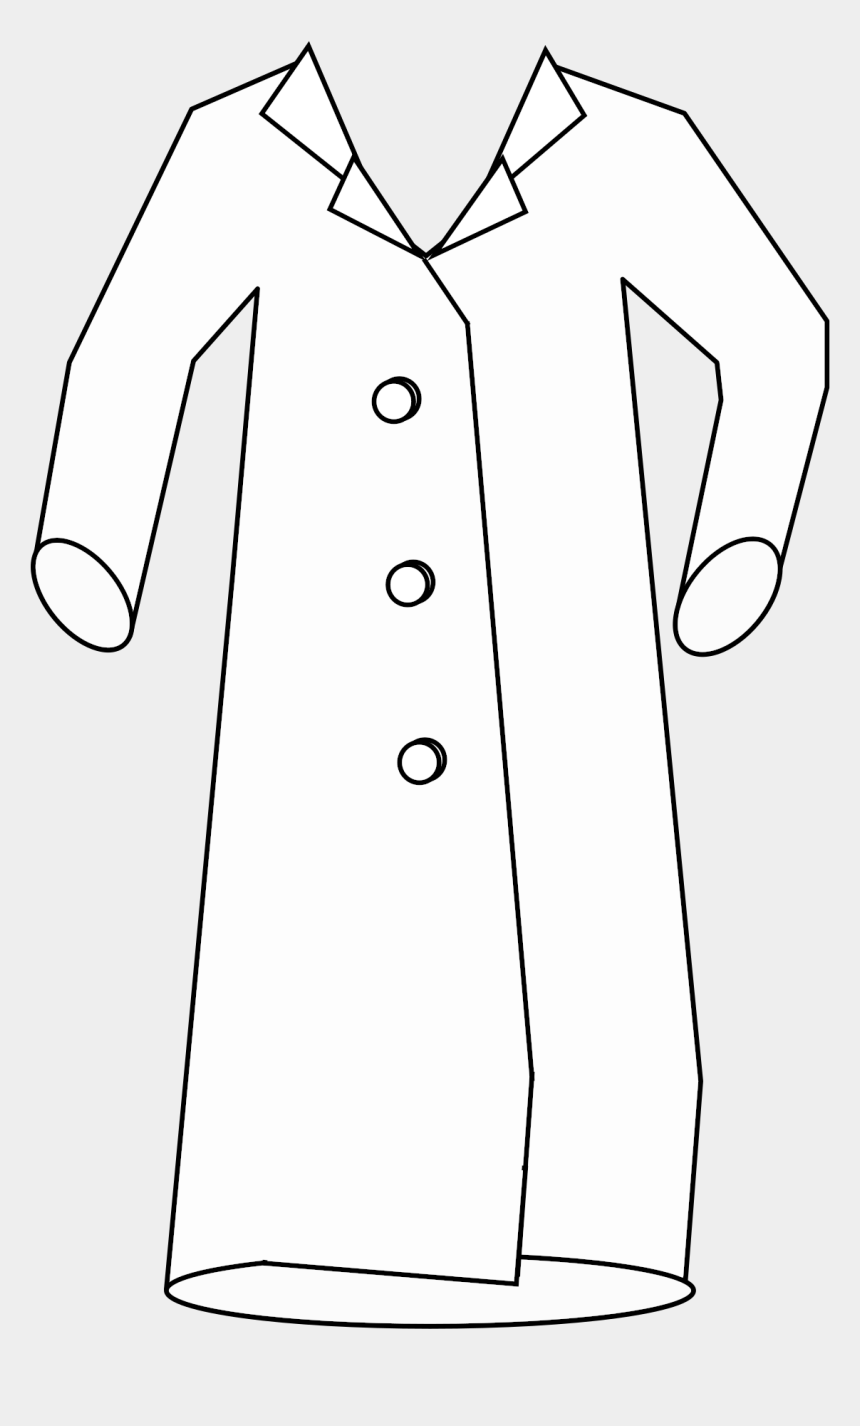 pocket clipart, Cartoons - Pocket Clipart Lab Coat - Lab Coat Clipart Png